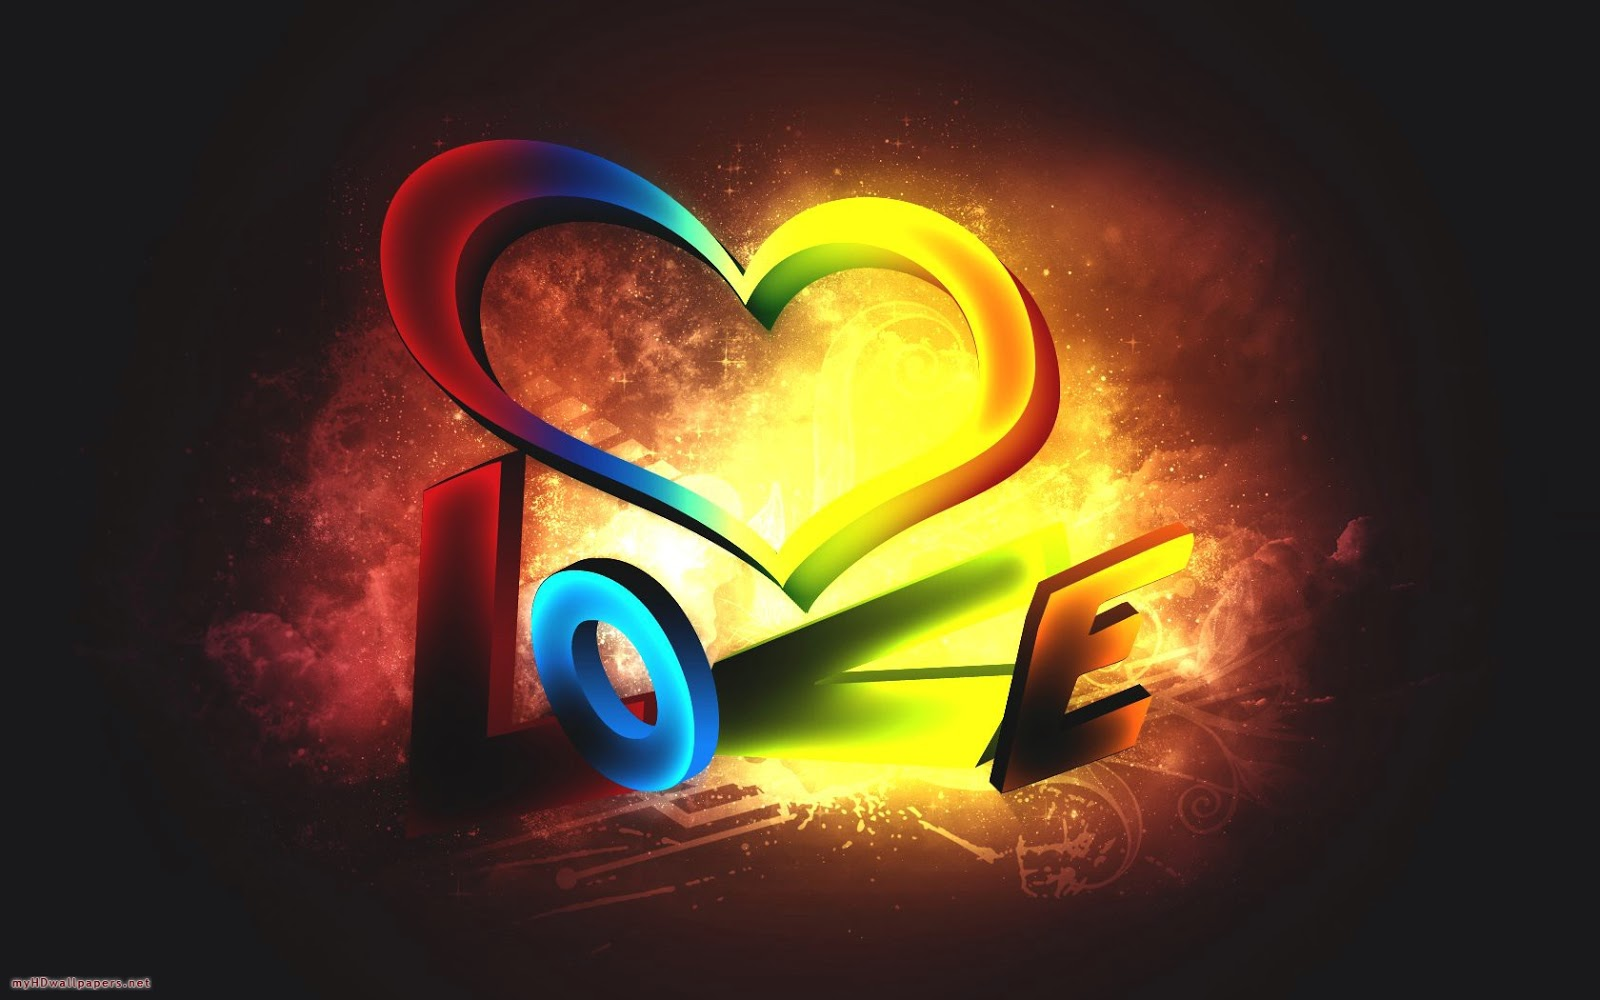 Hd Wallpaper For Mobile Of Love : Unique And Wonderful Wallpapers Of Love Free Download For Android Free Download Wallpaper ...